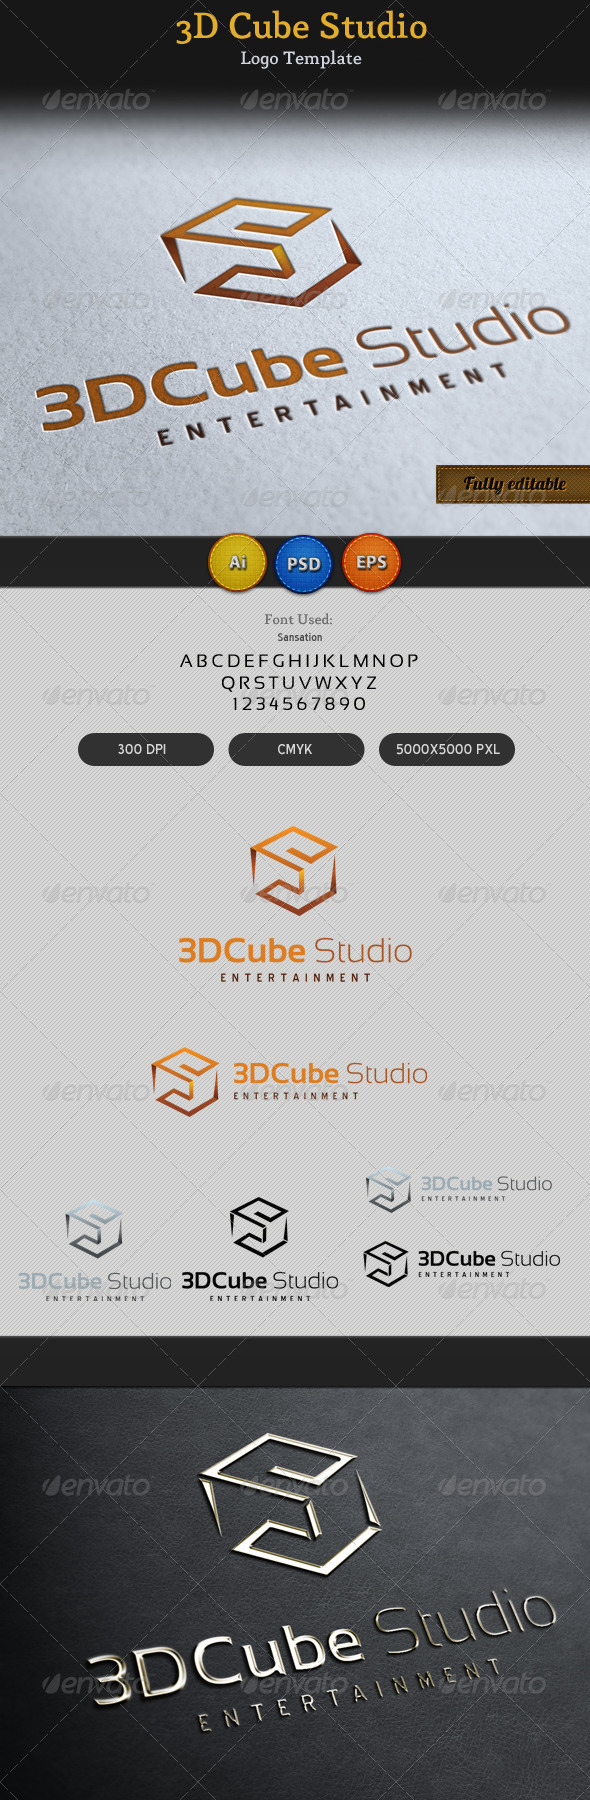 GraphicRiver 3D Cube Studio Entertainment Media Logo 4511521